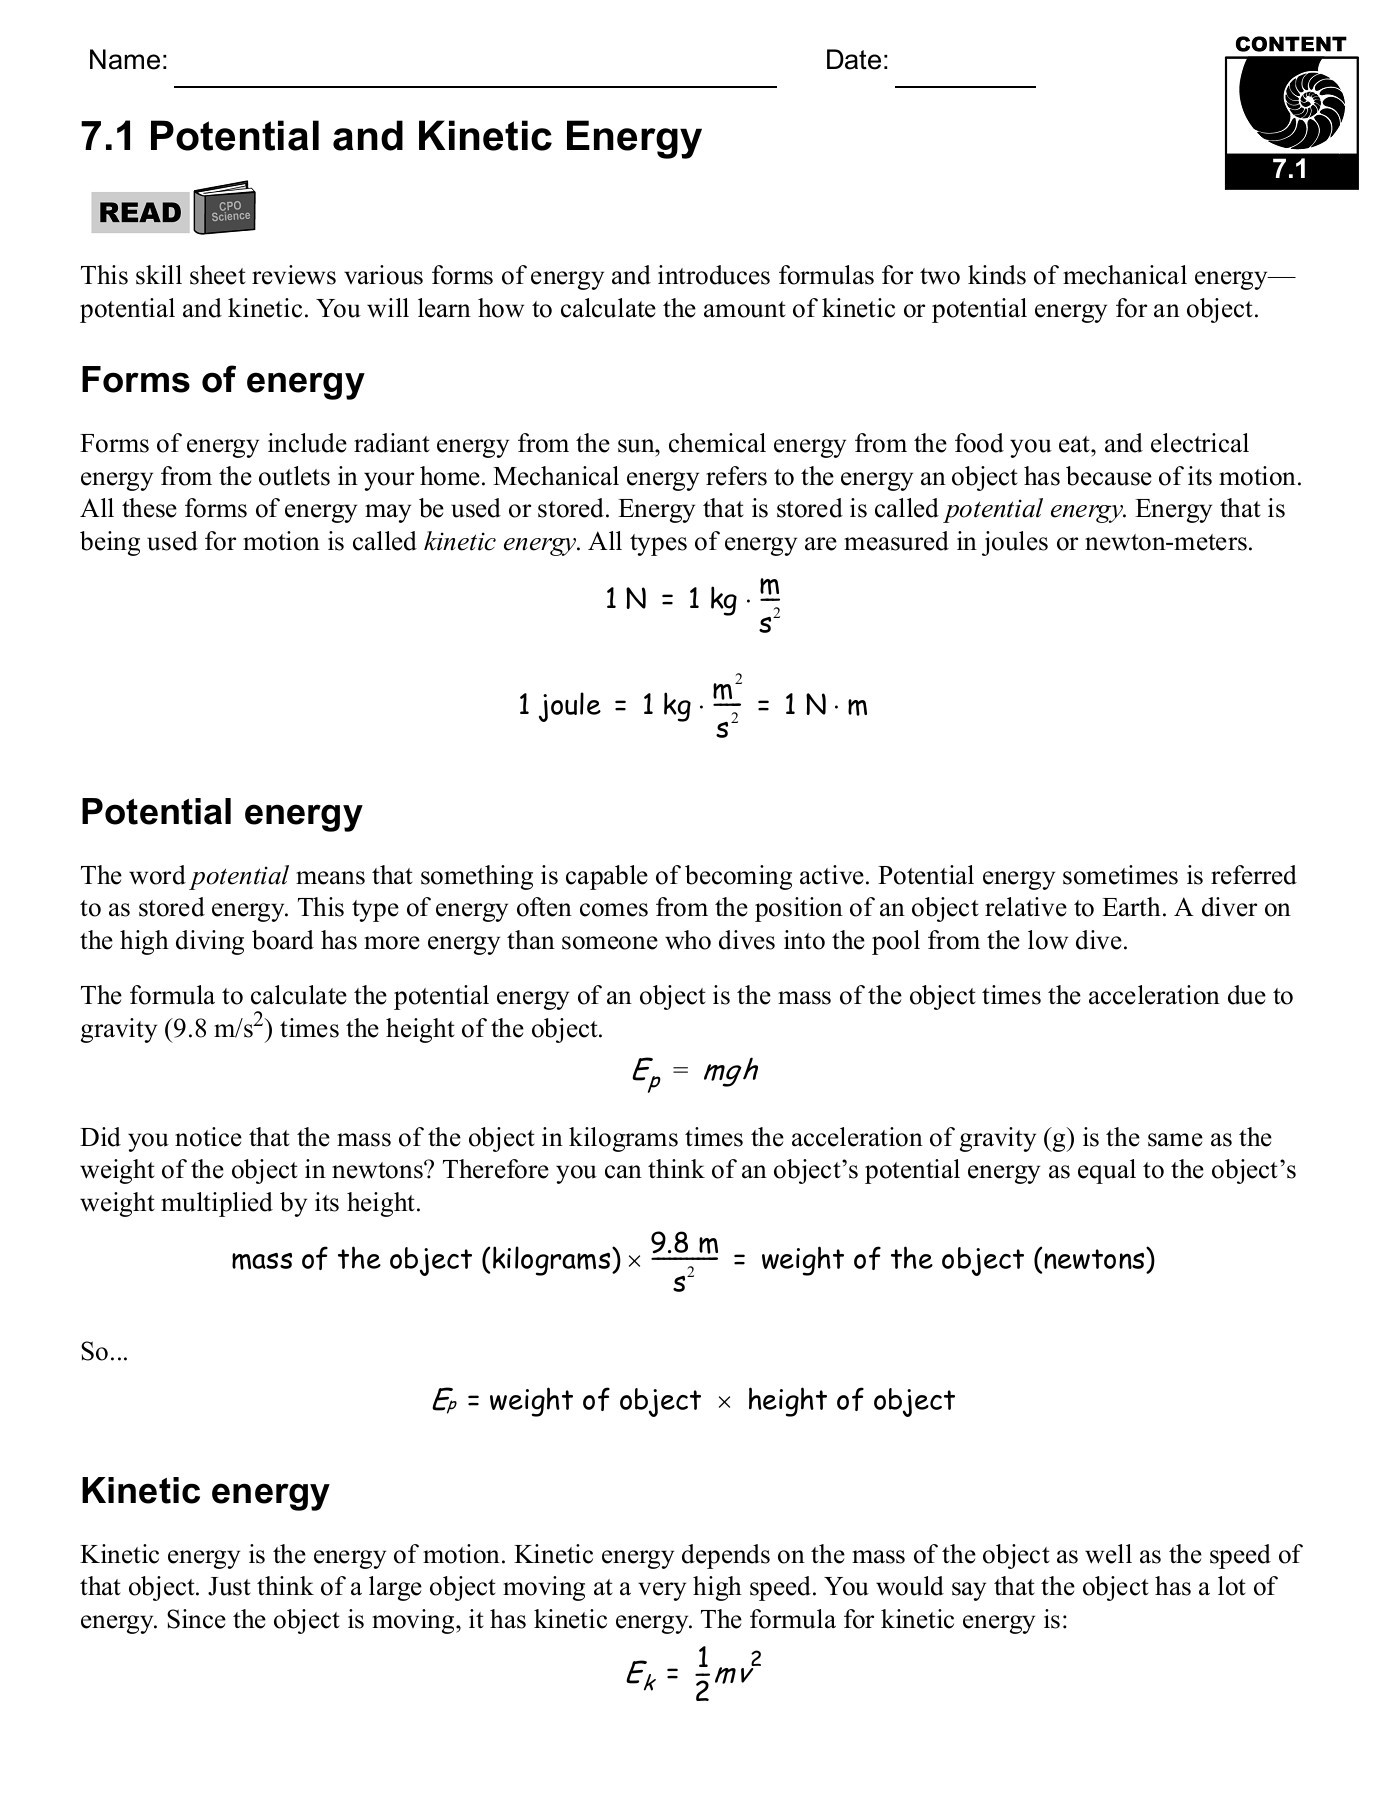 Work and Energy Worksheet Answers